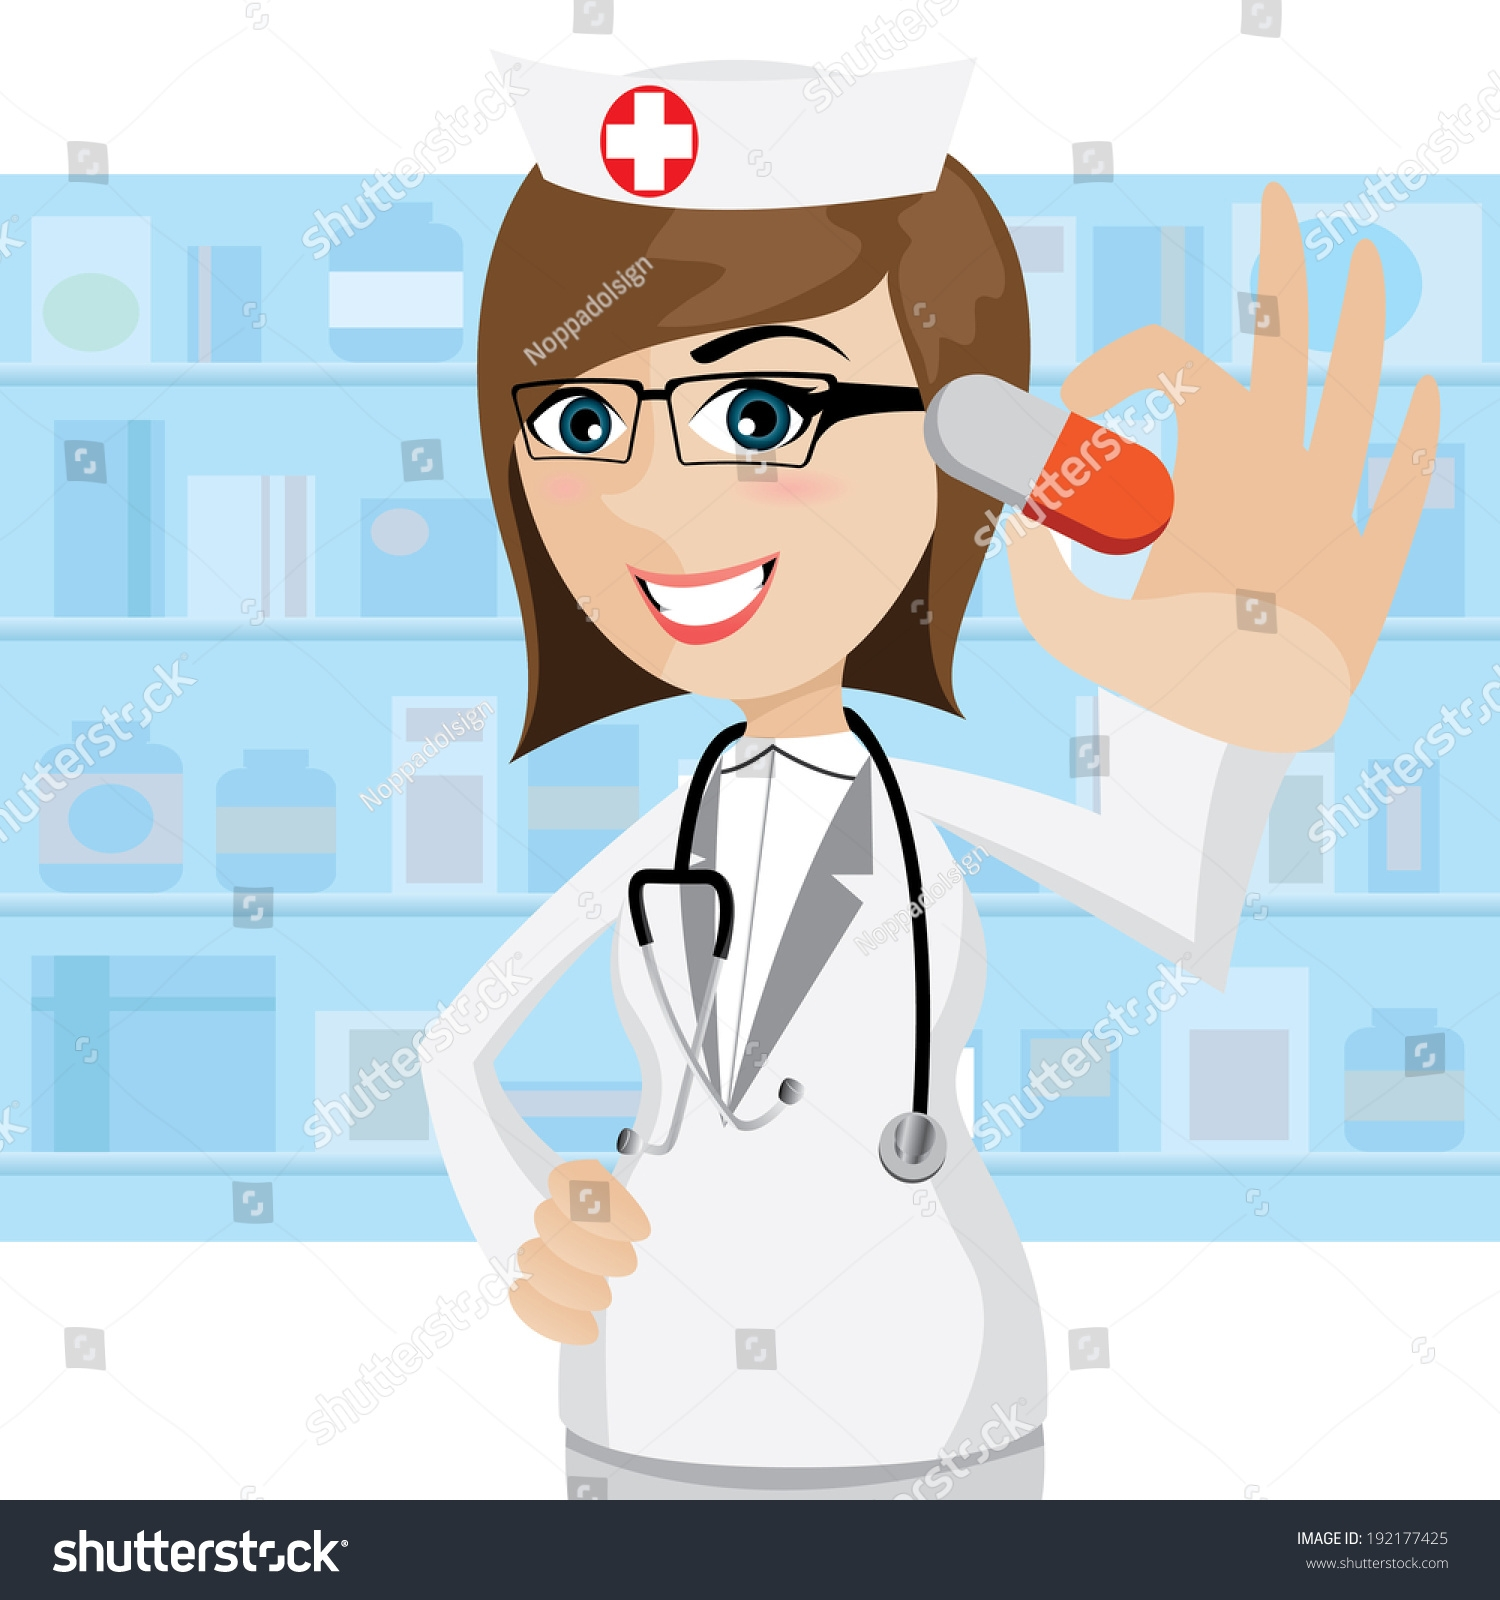 Pharmacist clipart. Awesome design digital collection